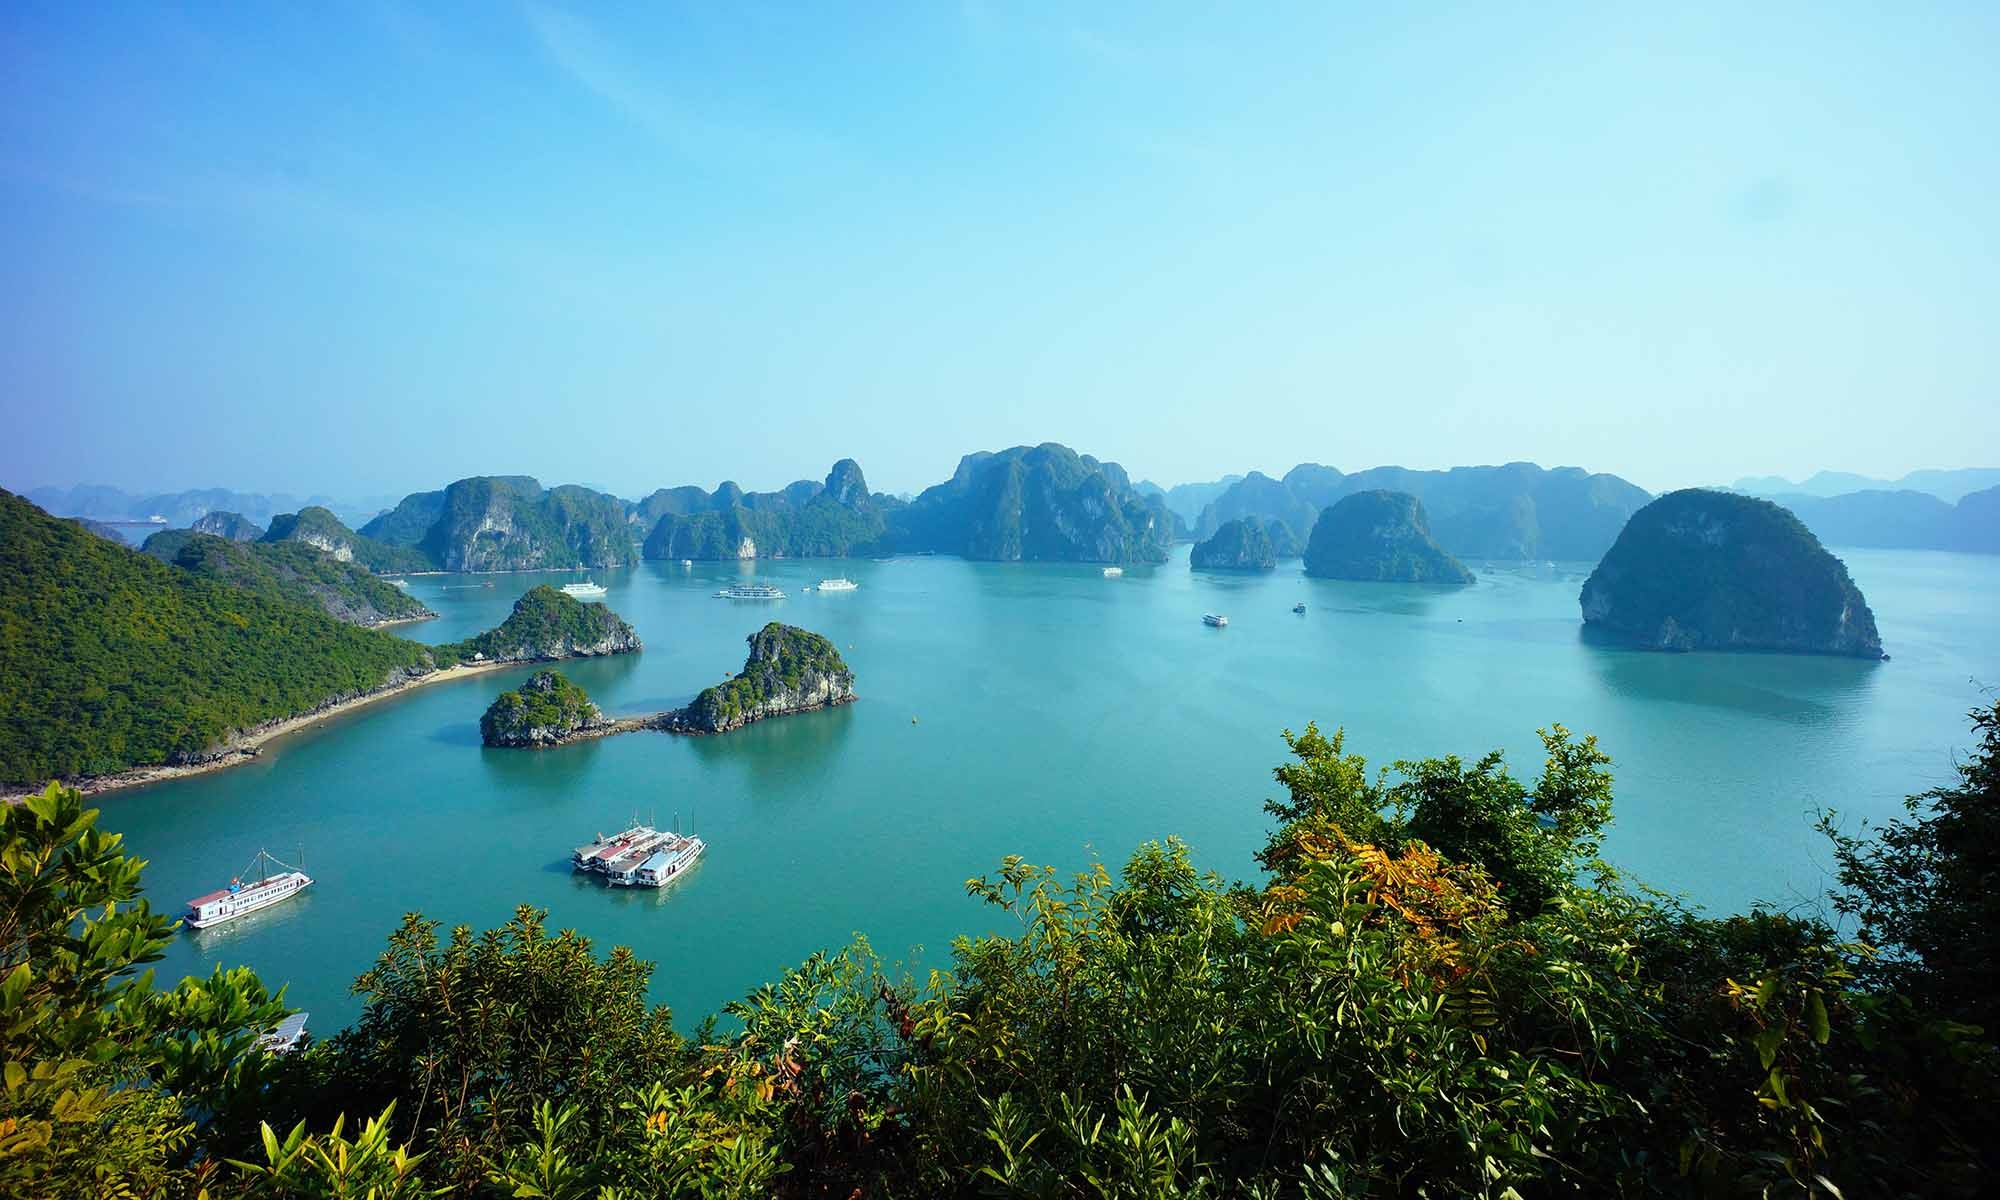 Vietnam - Ha Long Bay